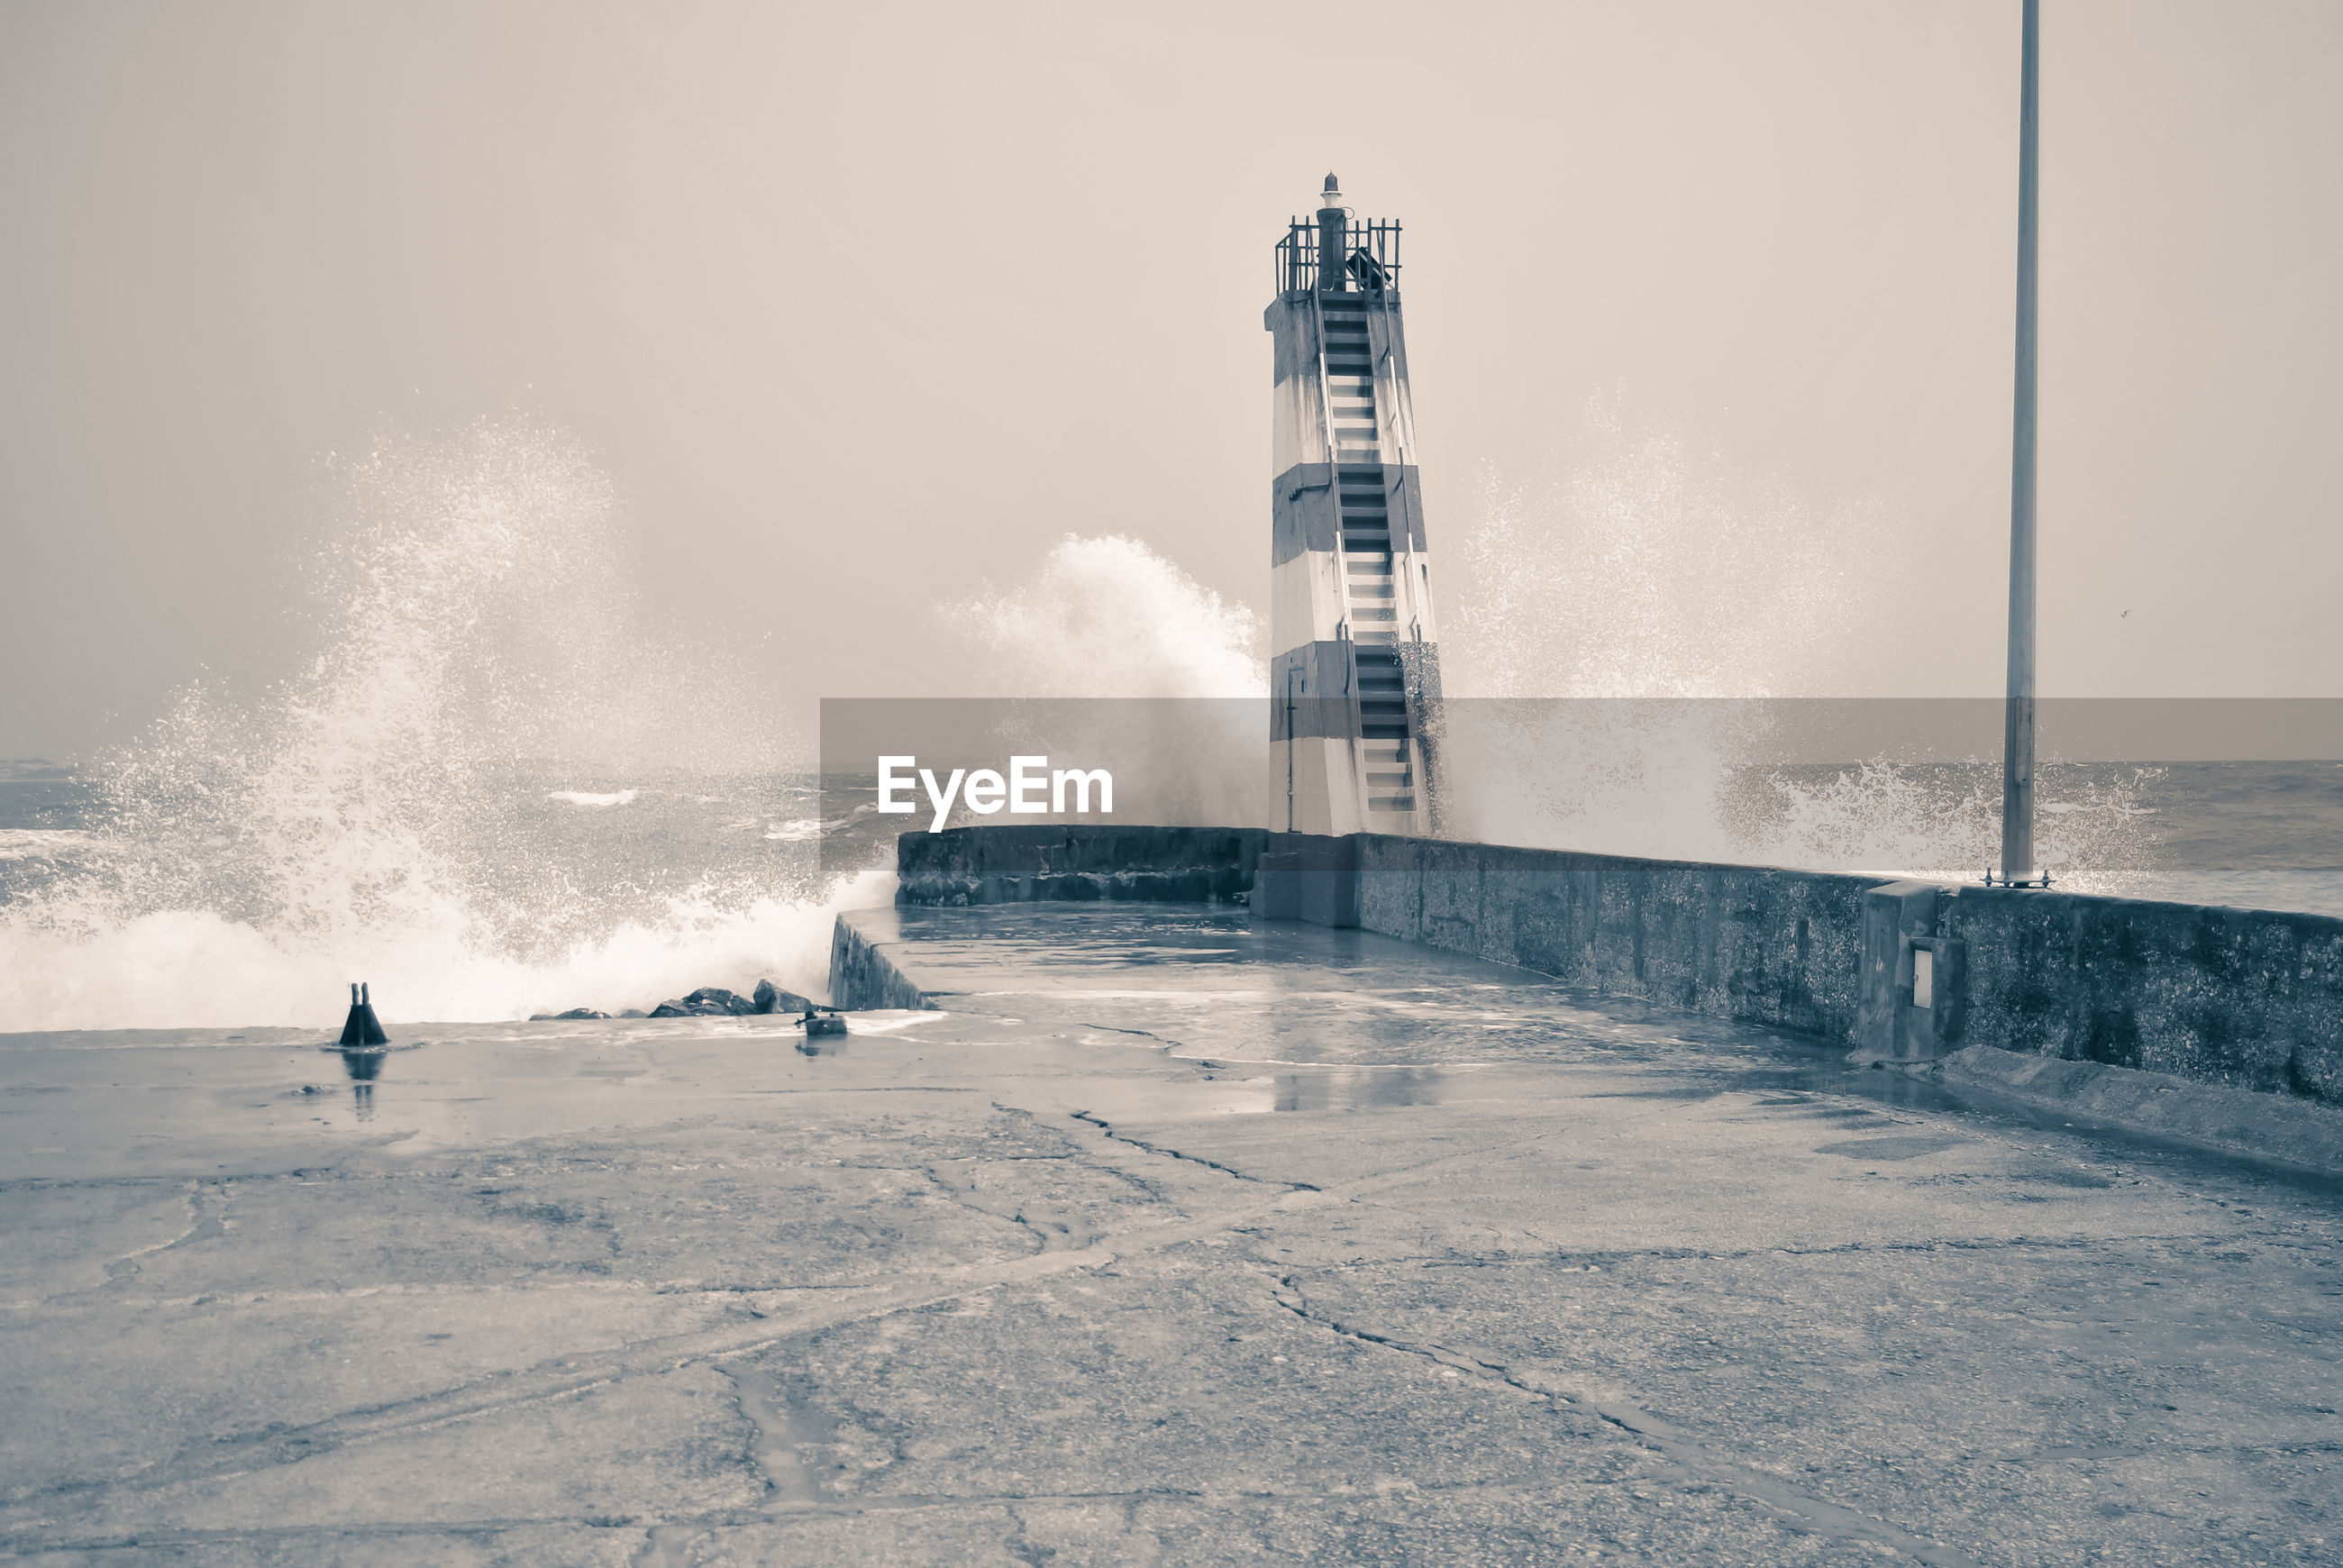 MAN STANDING BY LIGHTHOUSE AGAINST SEA